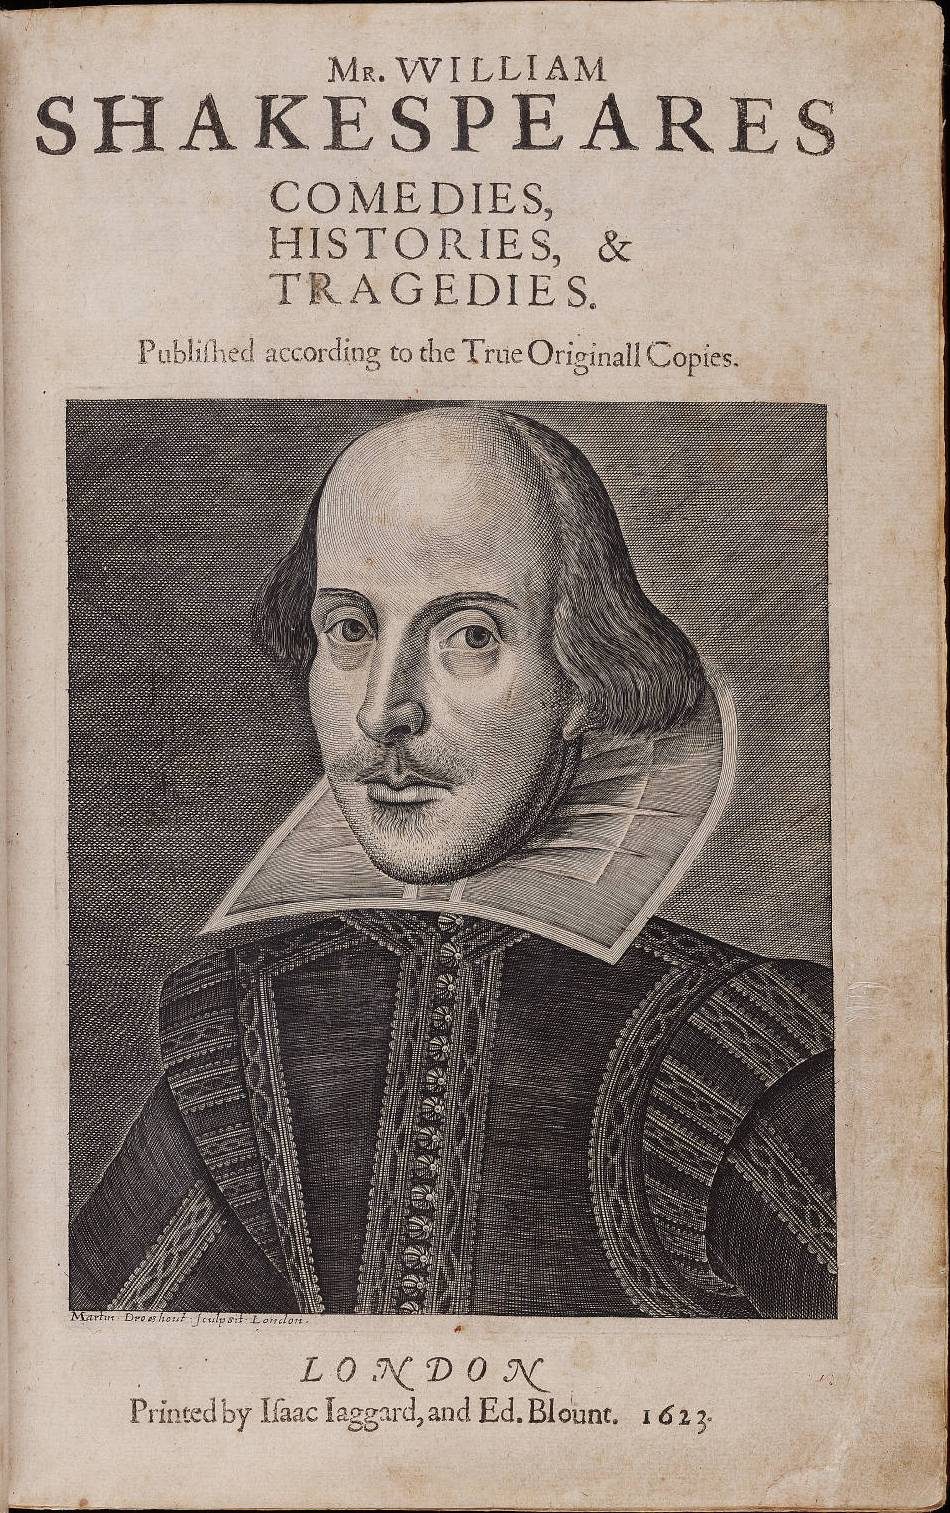 Am I the only teen who's enjoying Shakespeare?